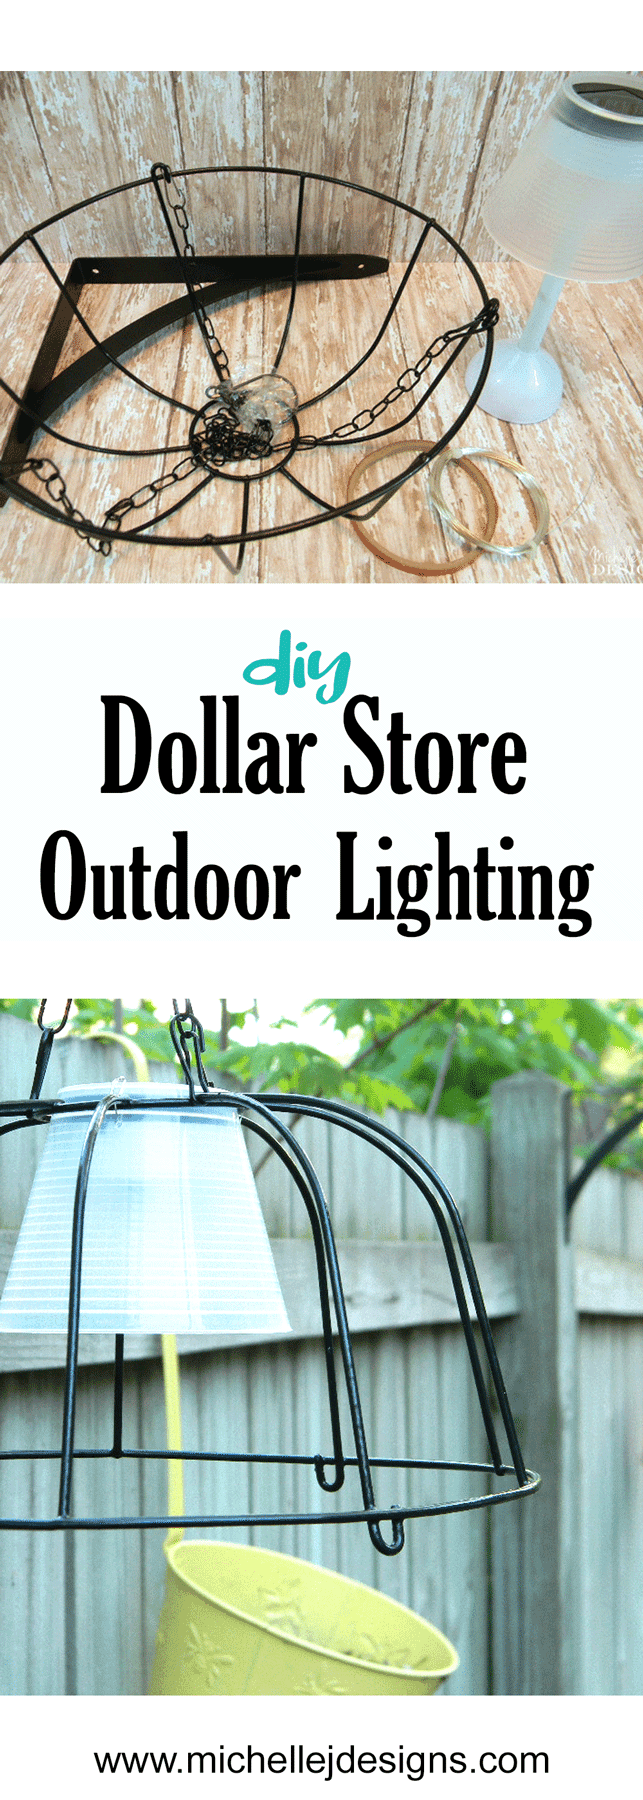 I used some dollar store hanging planters and solar lights to create some fun dollar store outdoor lighting for my back paitio! #dollarstorecrafts #dollarstorelighting #outdoorlighting #diyoutdoorlighting - www.michellejdesigns.com